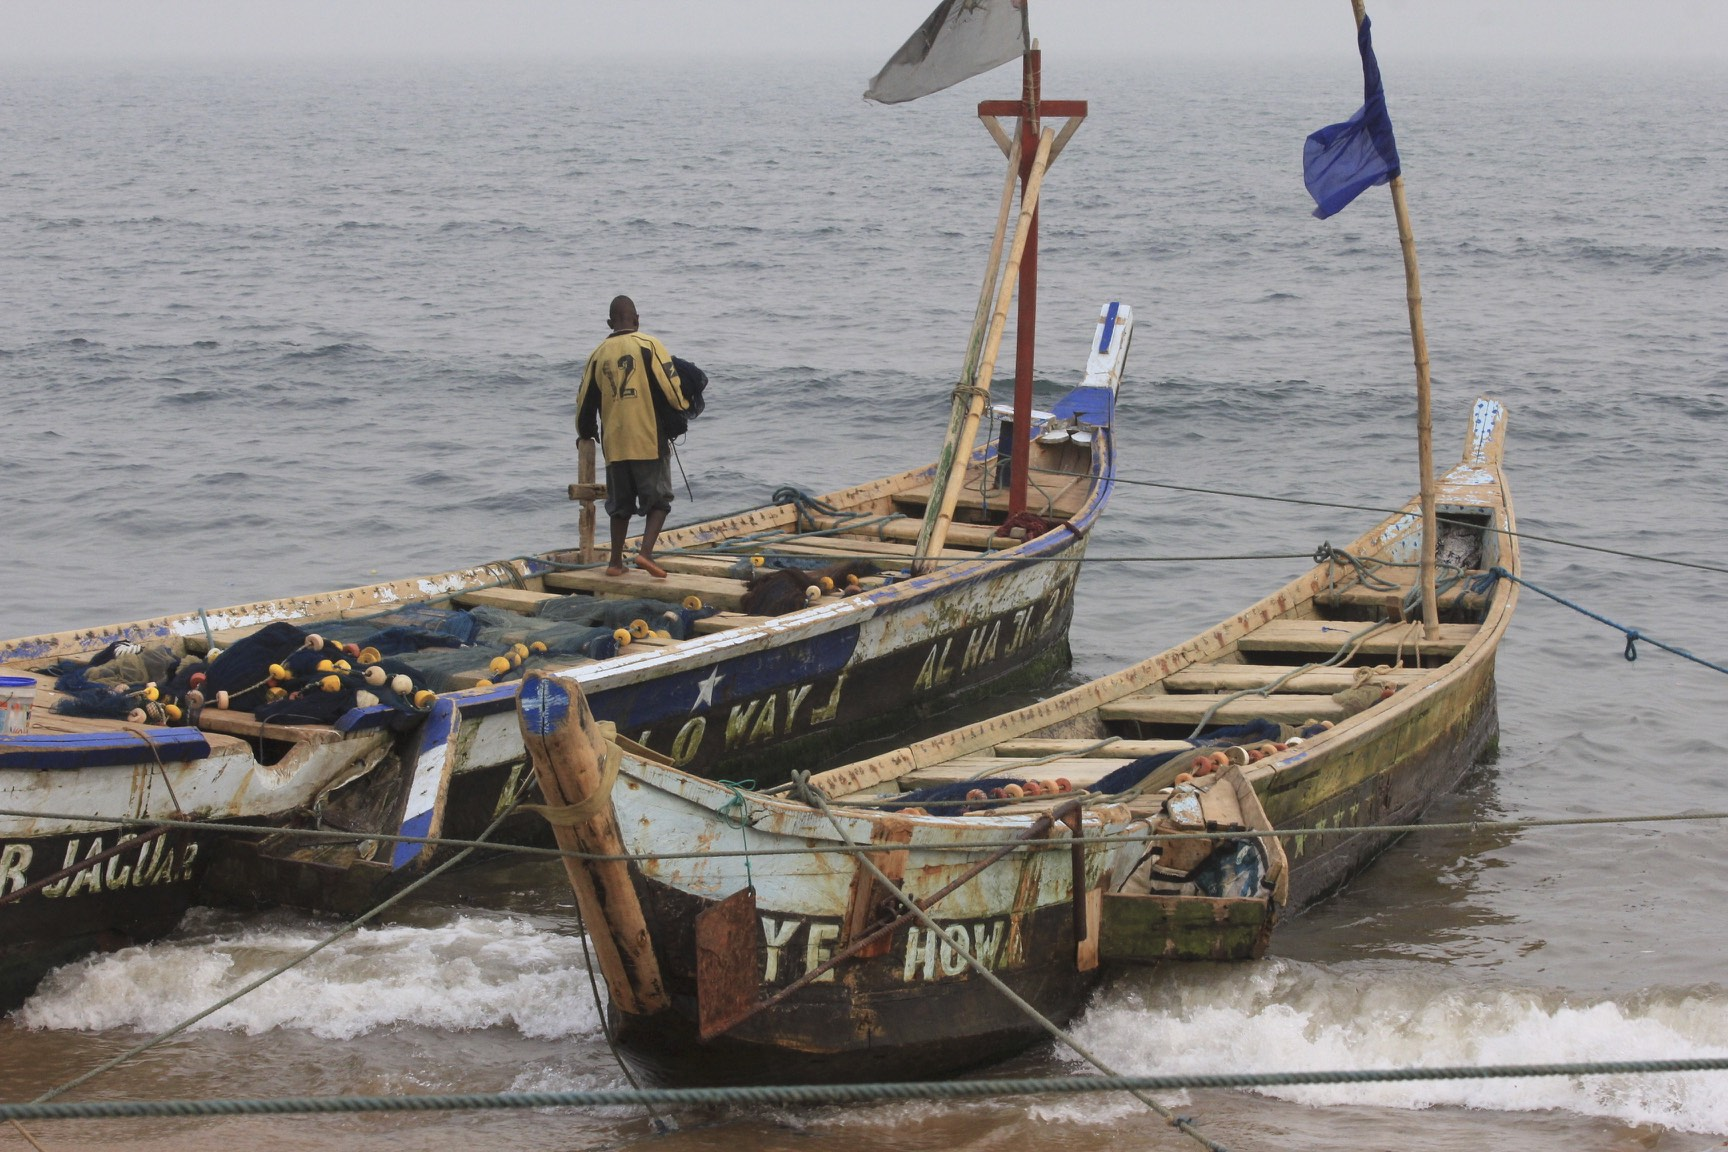 Fishing boats in Accra